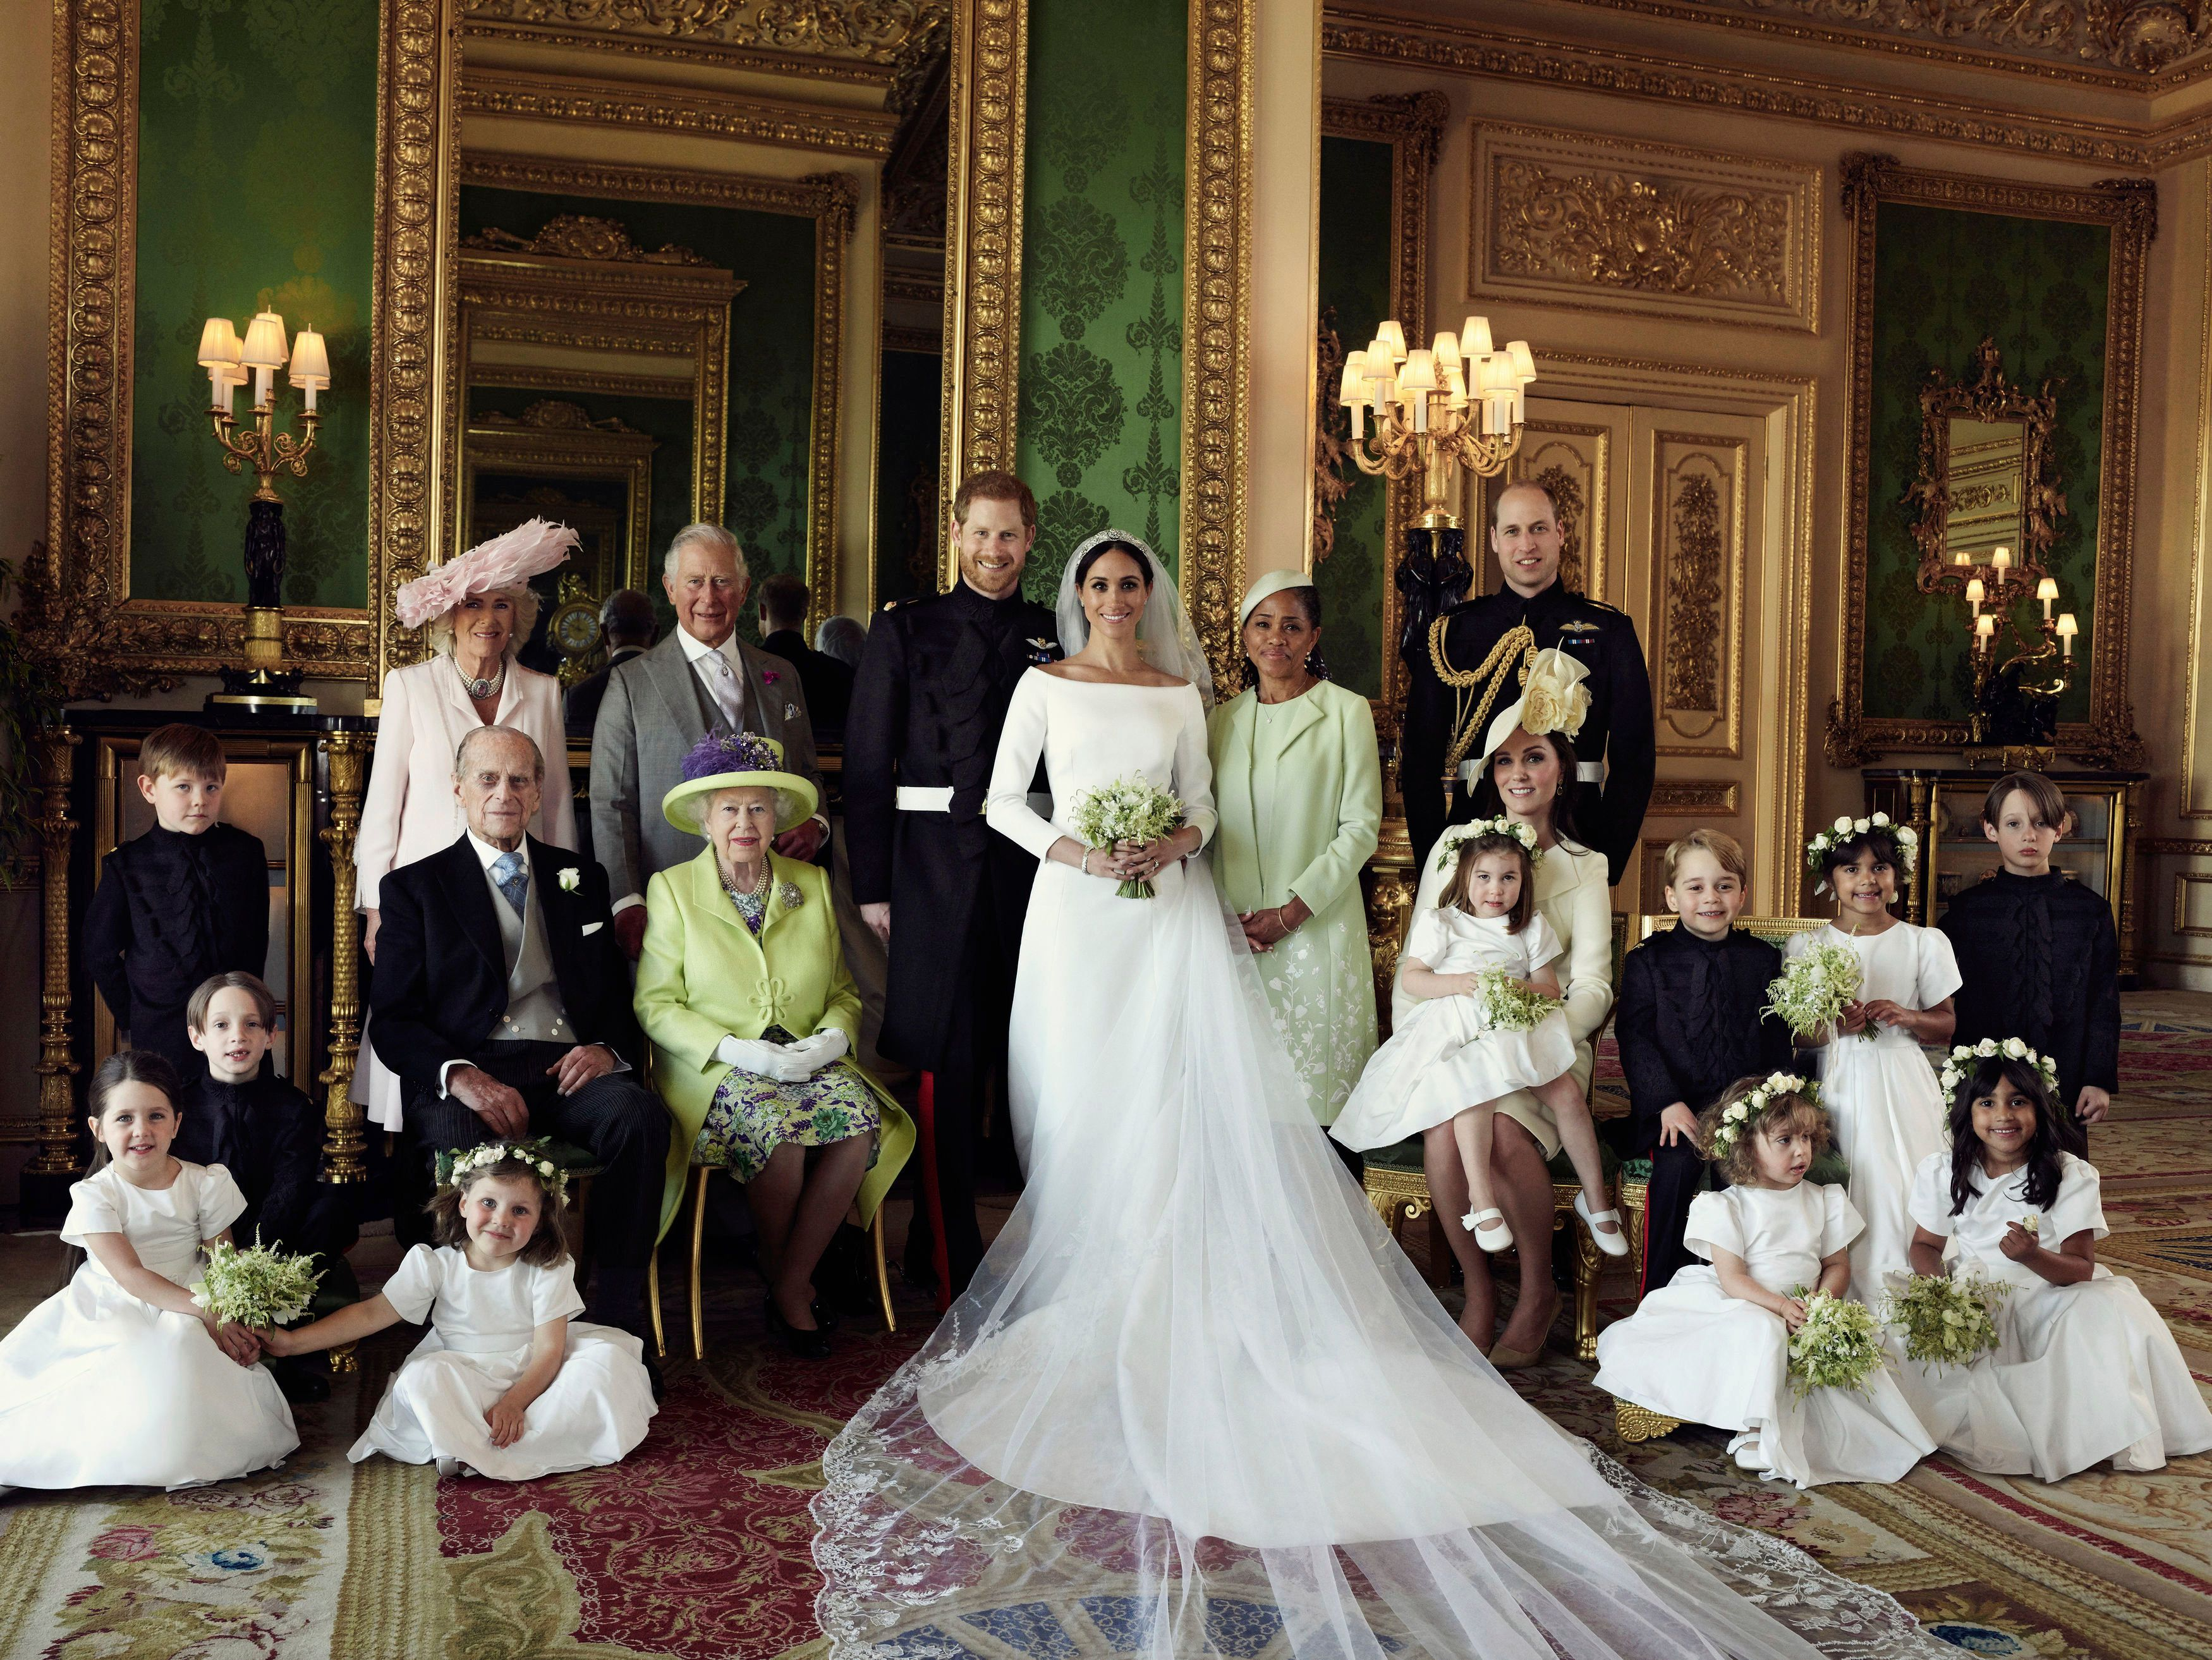 A full shot of the gorgeous Givenchy wedding gown worn by Meghan, Duchess of Sussex.